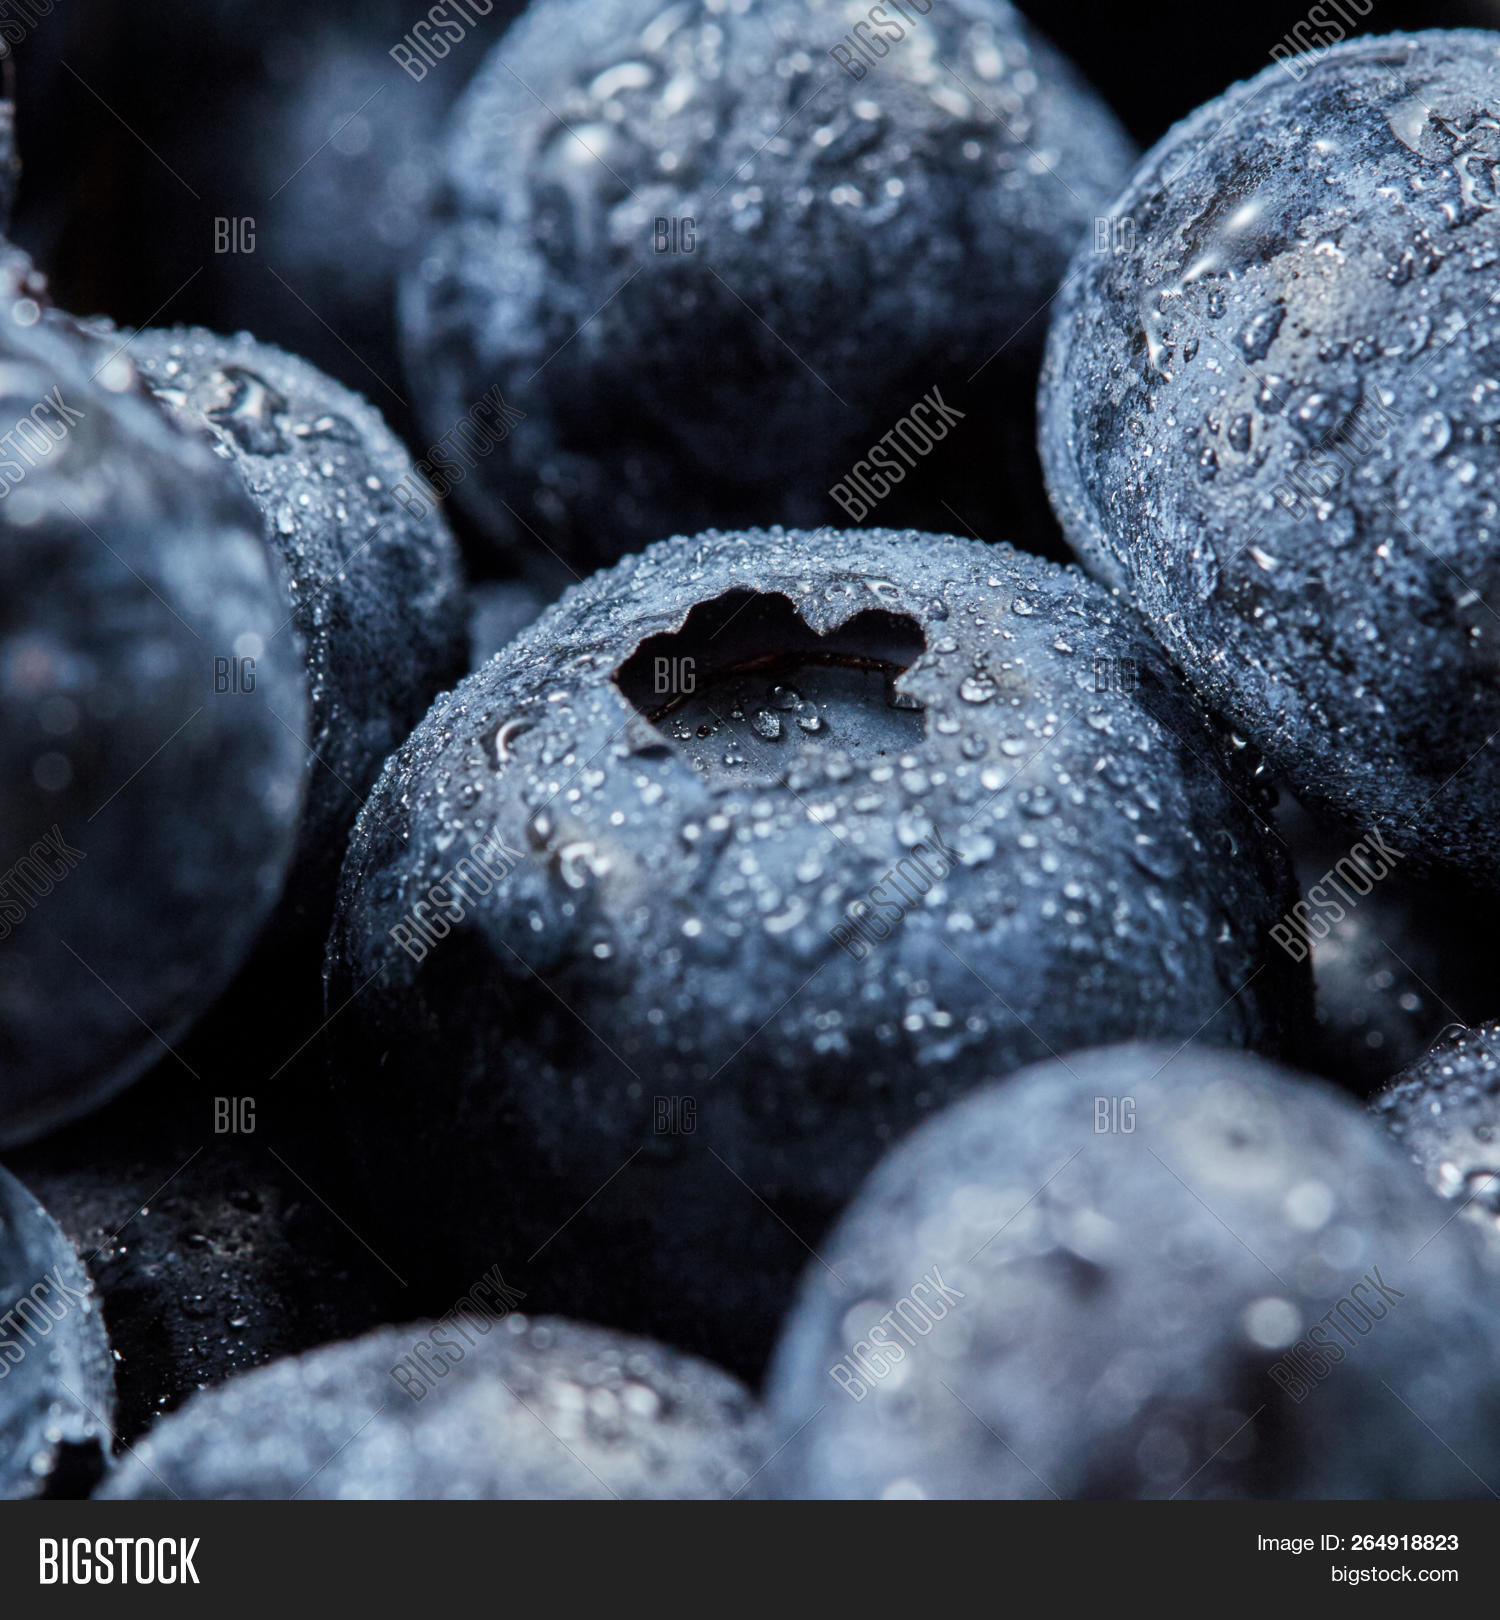 Blueberries Background Image & Photo (Free Trial) | Bigstock